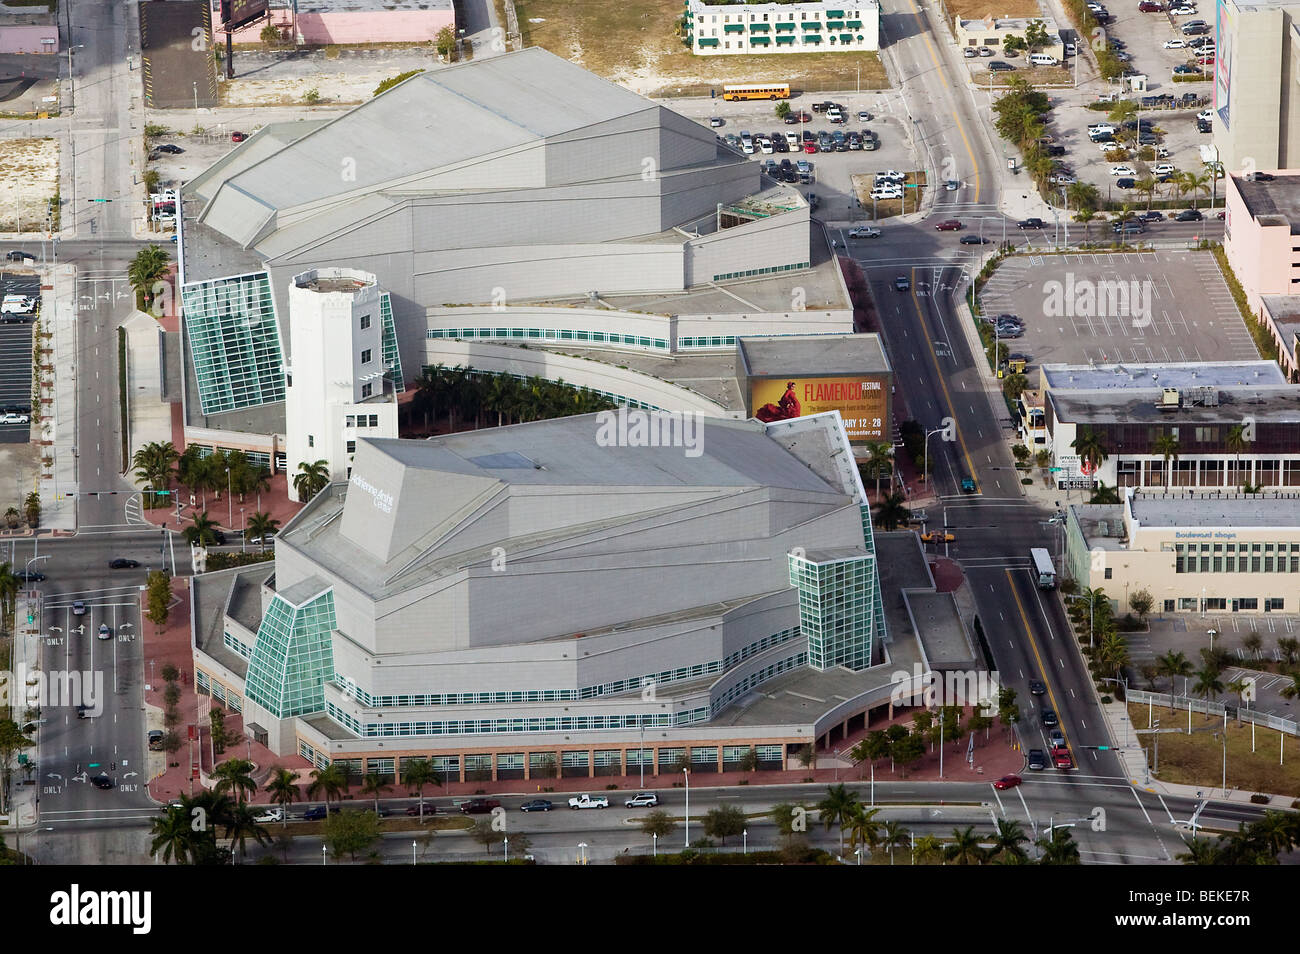 aerial above Adrienne Arsht center for the Performing Arts Biscayne Boulevard downtown Miami Florida USA Stock Photo